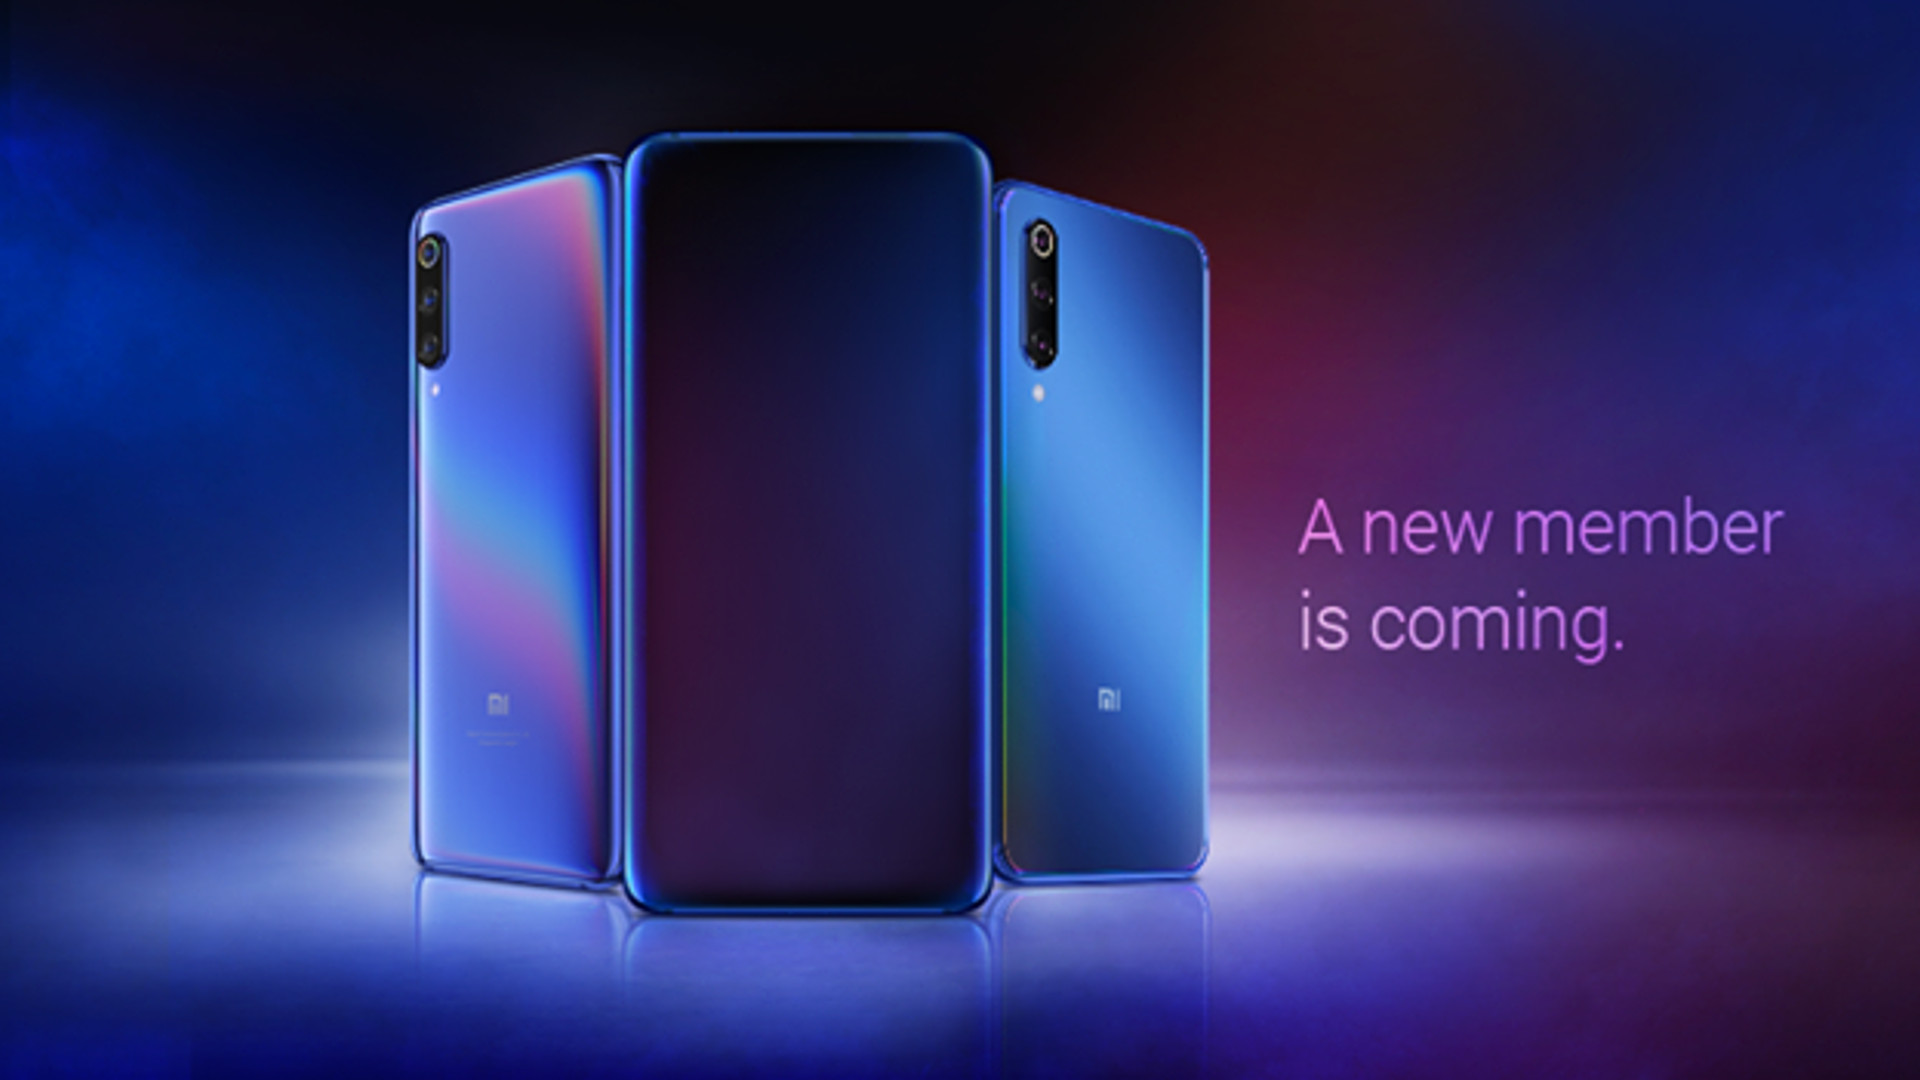 Xiaomi Mi 9T tease, Xiaomi Mi 9T teased to arrive in Philippines shores!, Gadget Pilipinas